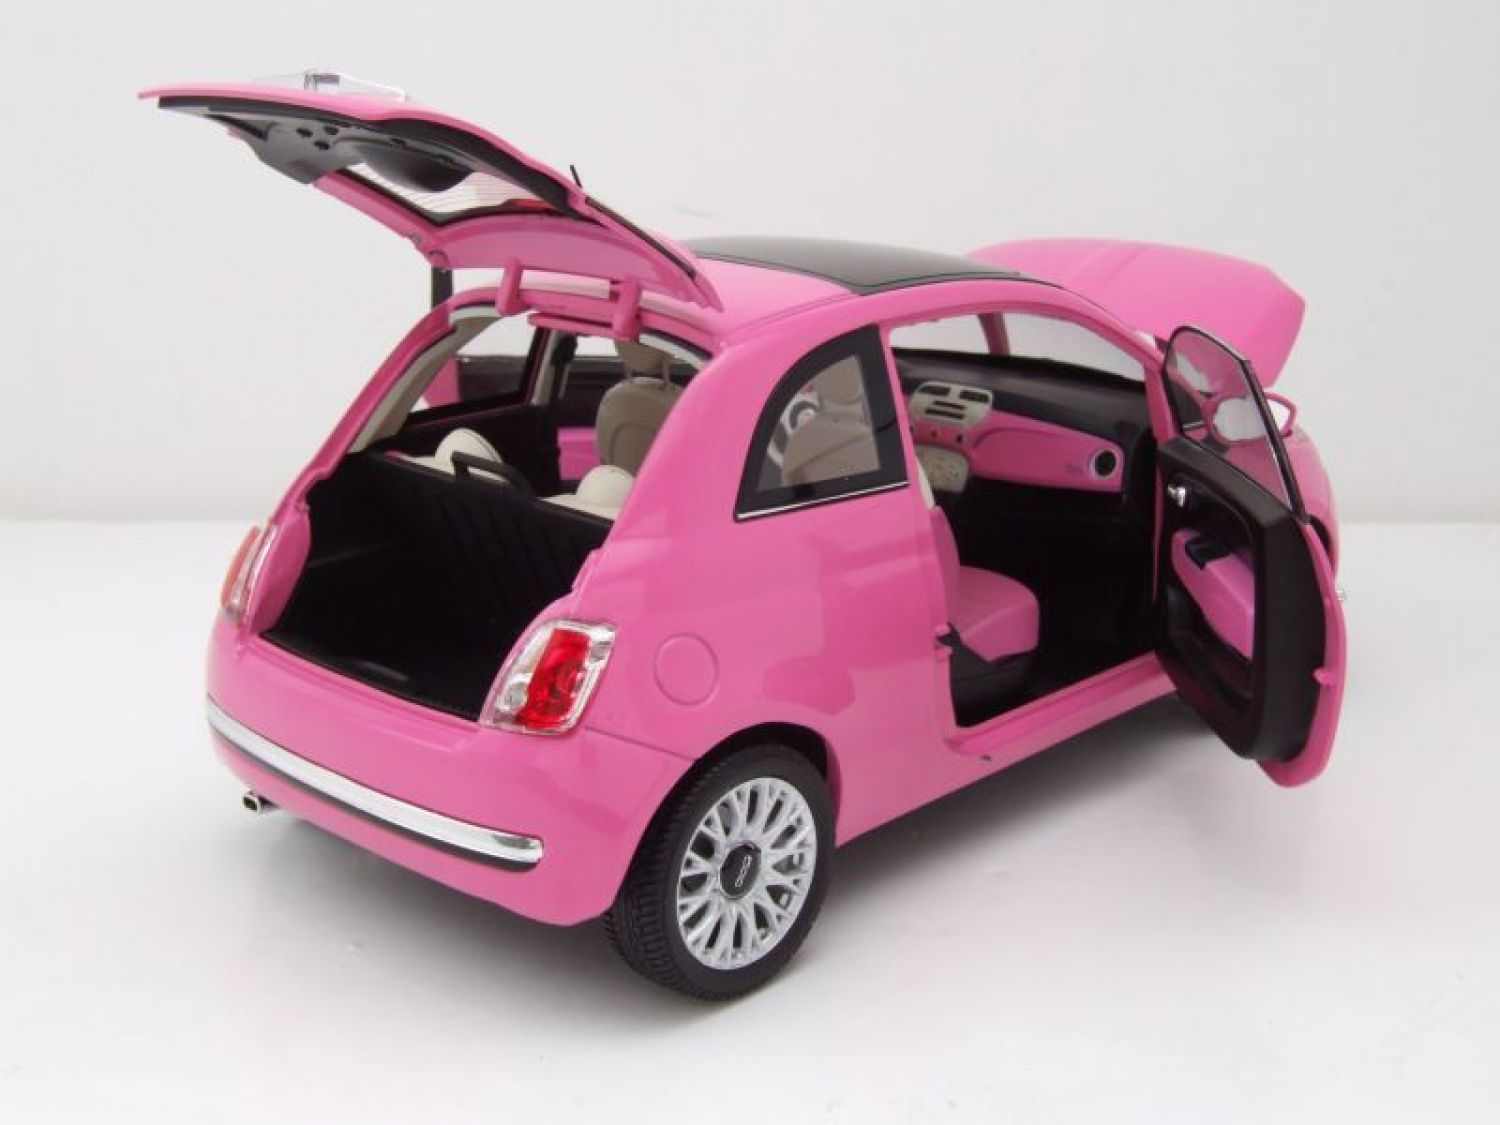 fiat 500 c 2010 rose mod le de voiture 1 18 norev ebay. Black Bedroom Furniture Sets. Home Design Ideas